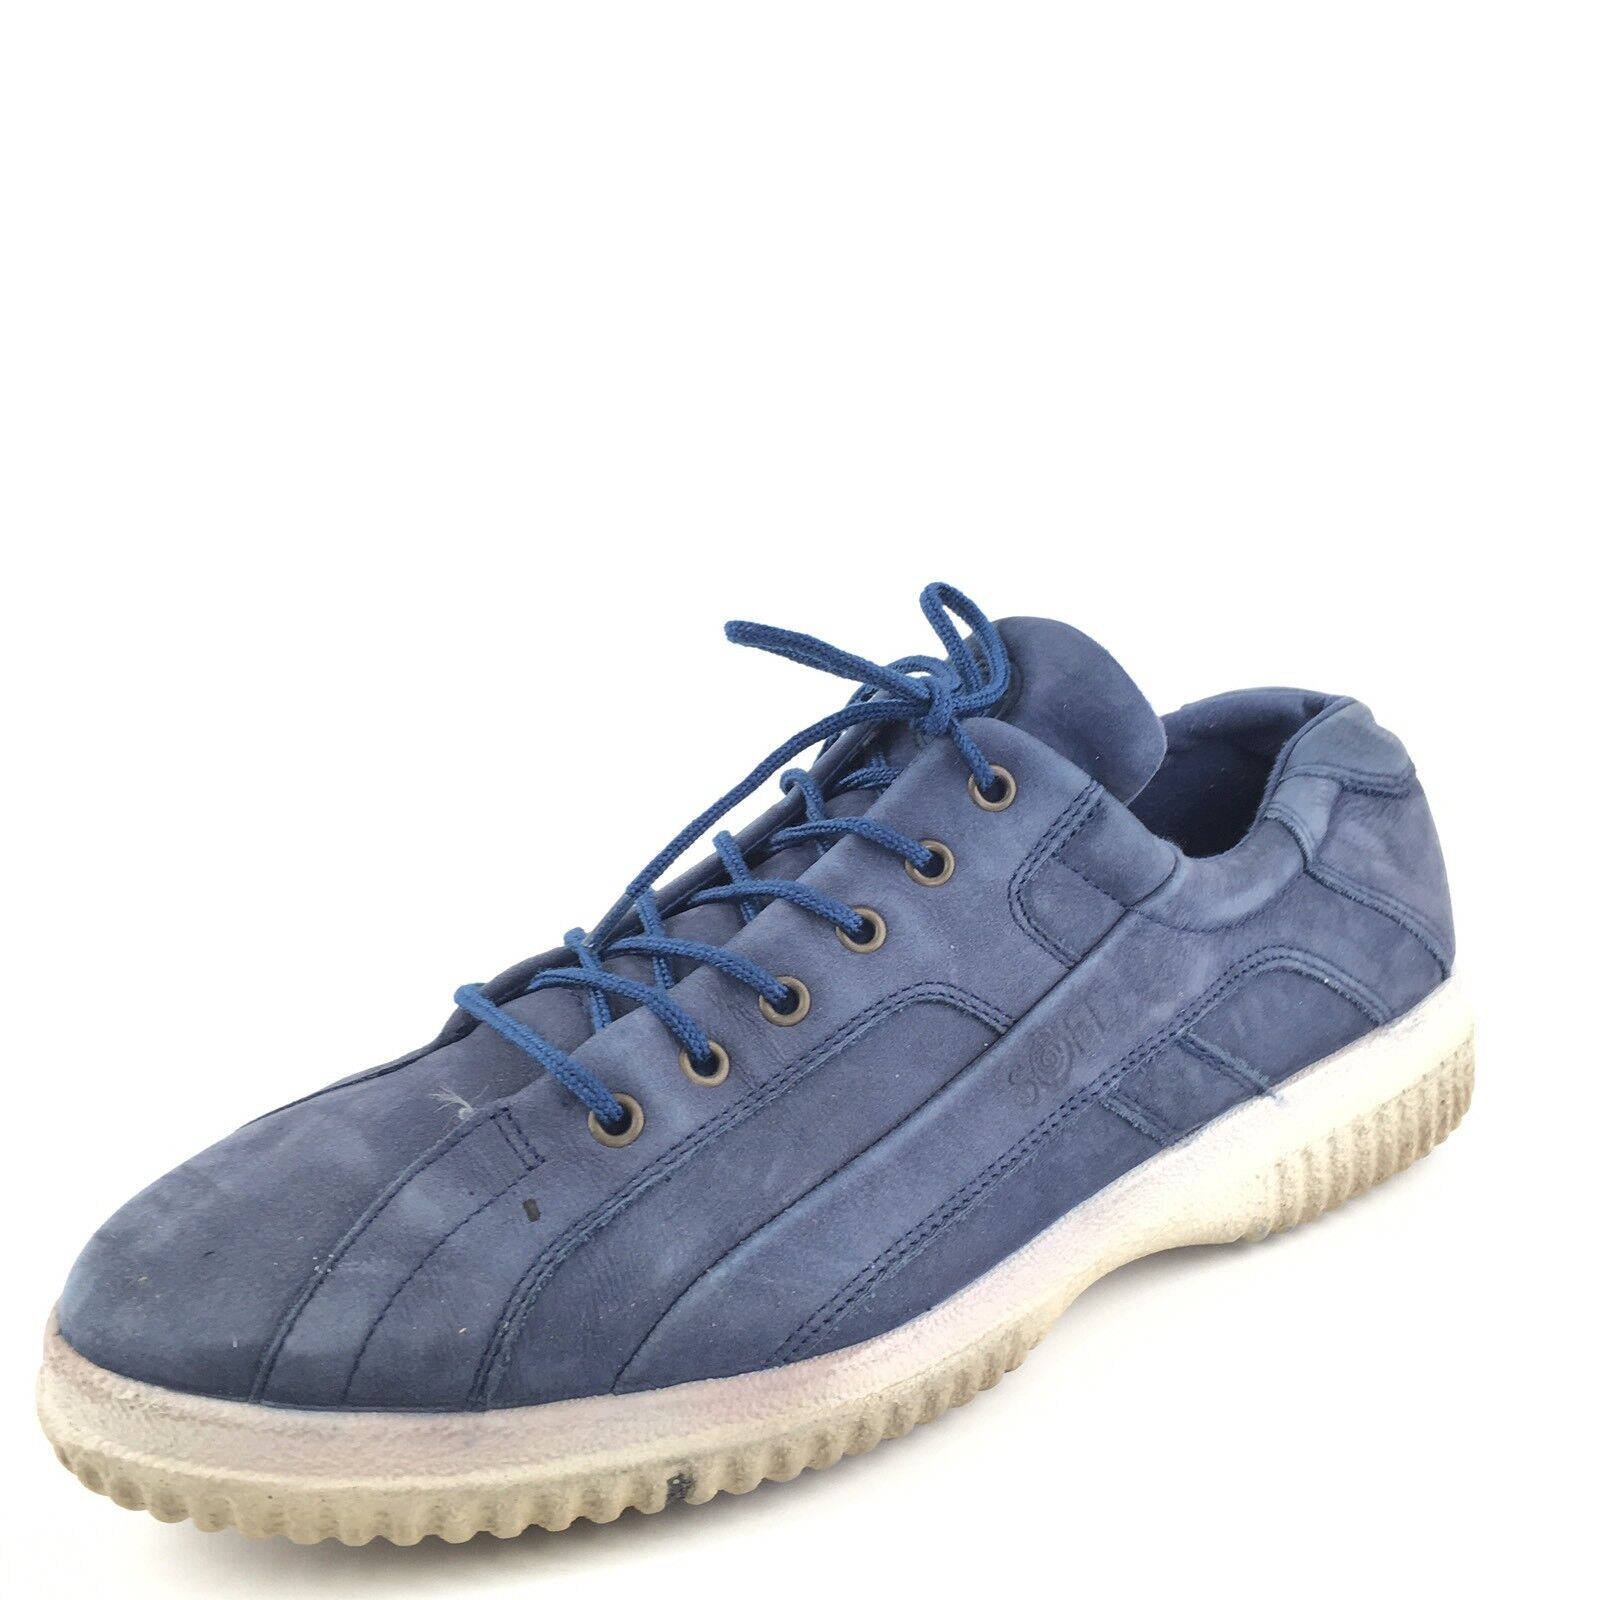 Ecco Soft Blue Leather Lace Up Casual Athletic Sneakers Women's Size 41 M*